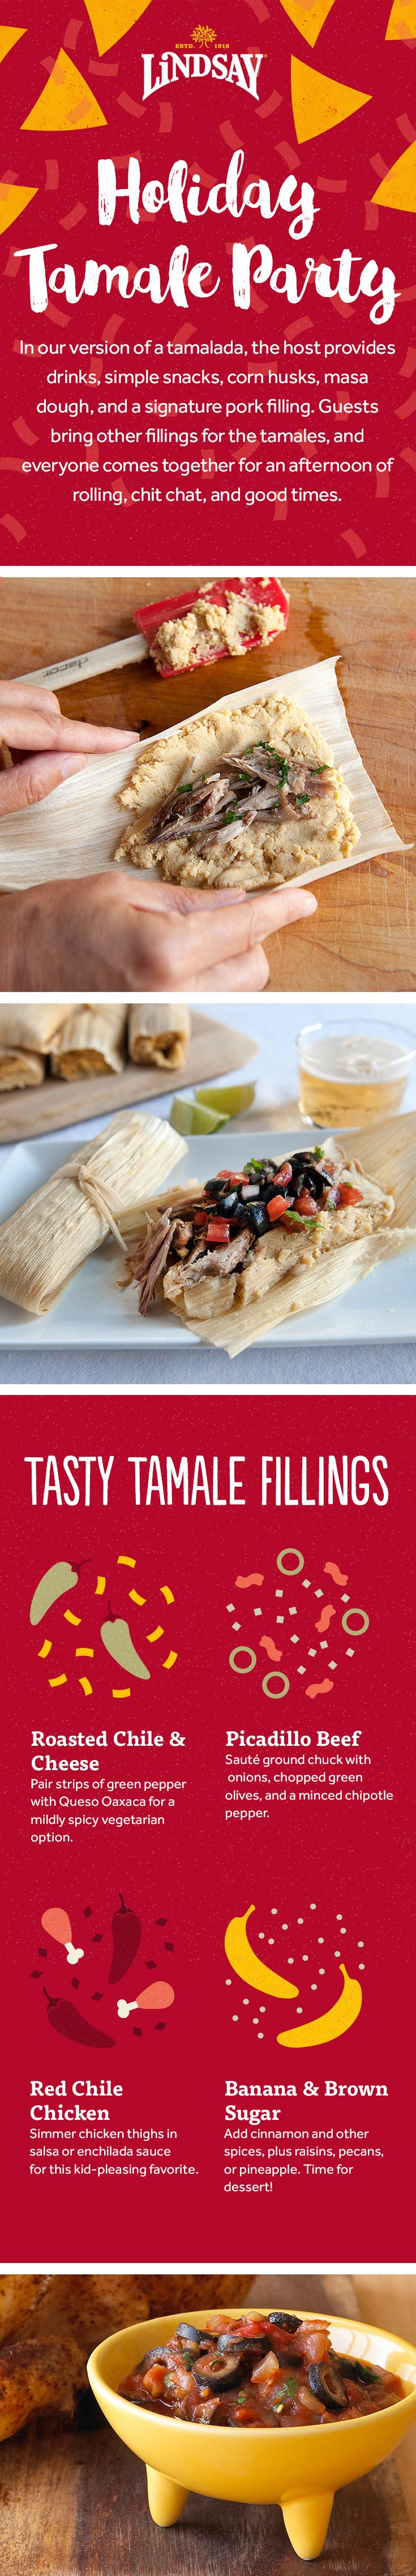 Make your holiday party a tamalada party! A tamalada is a traditional holiday tamale-making party featuring plenty of drinks and snacks. Get our guide to host a festive tamalada party this year! https://my.ilovelindsay.com/holiday-entertaining/tamale-fiesta